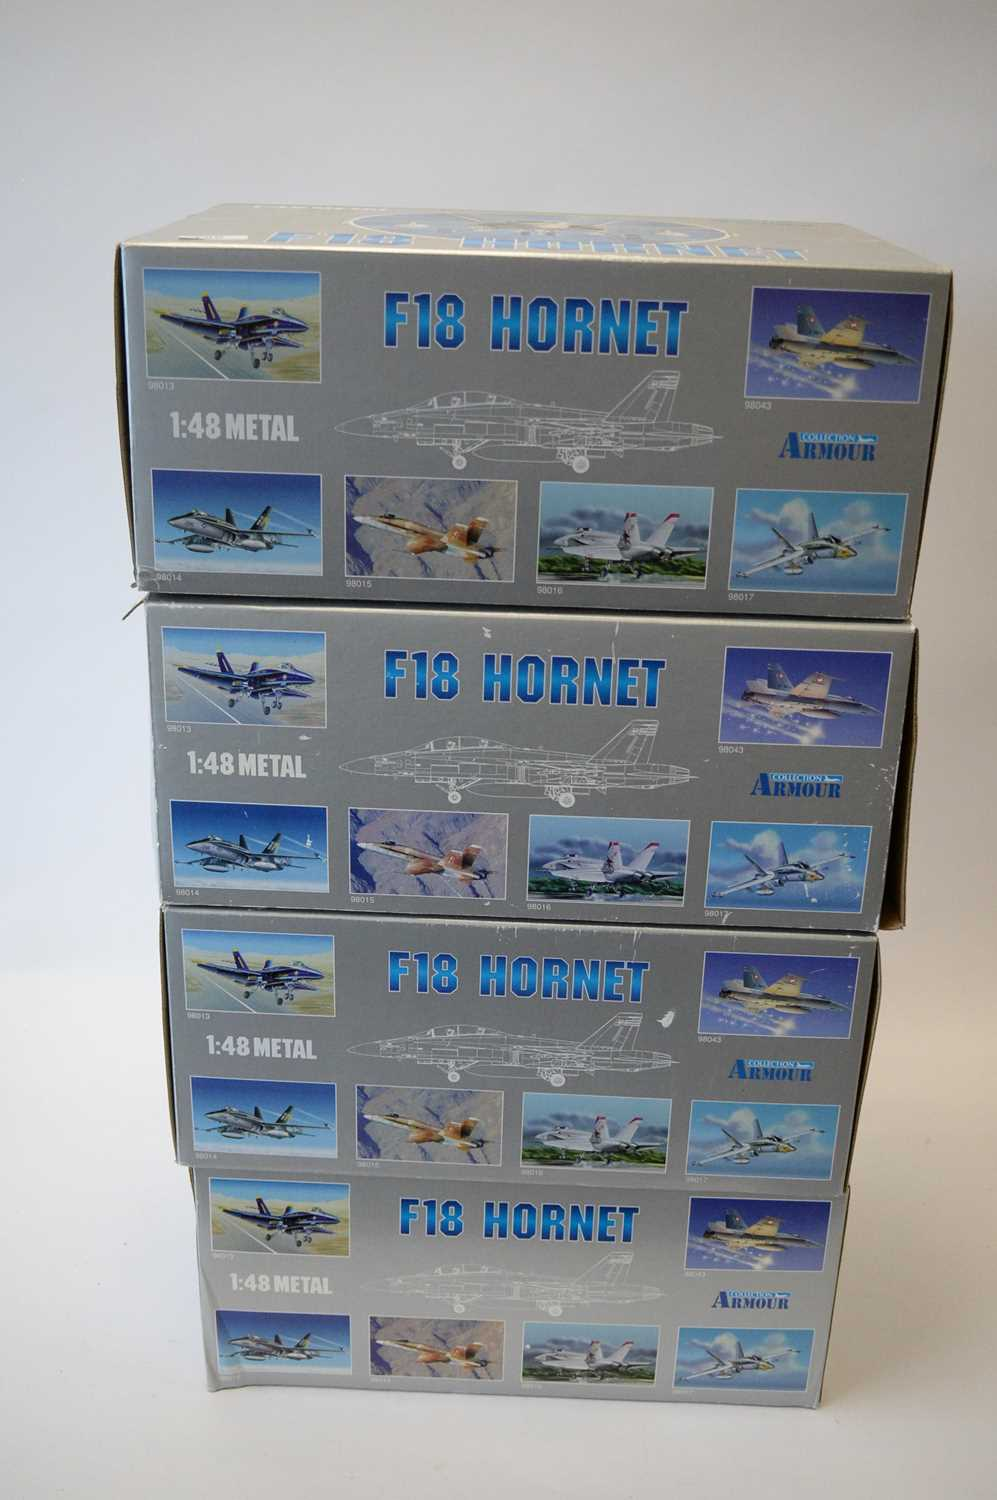 Lot 796 - Collection Armour 1:48 Scale metal diecast aeroplanes - F18 Hornet.